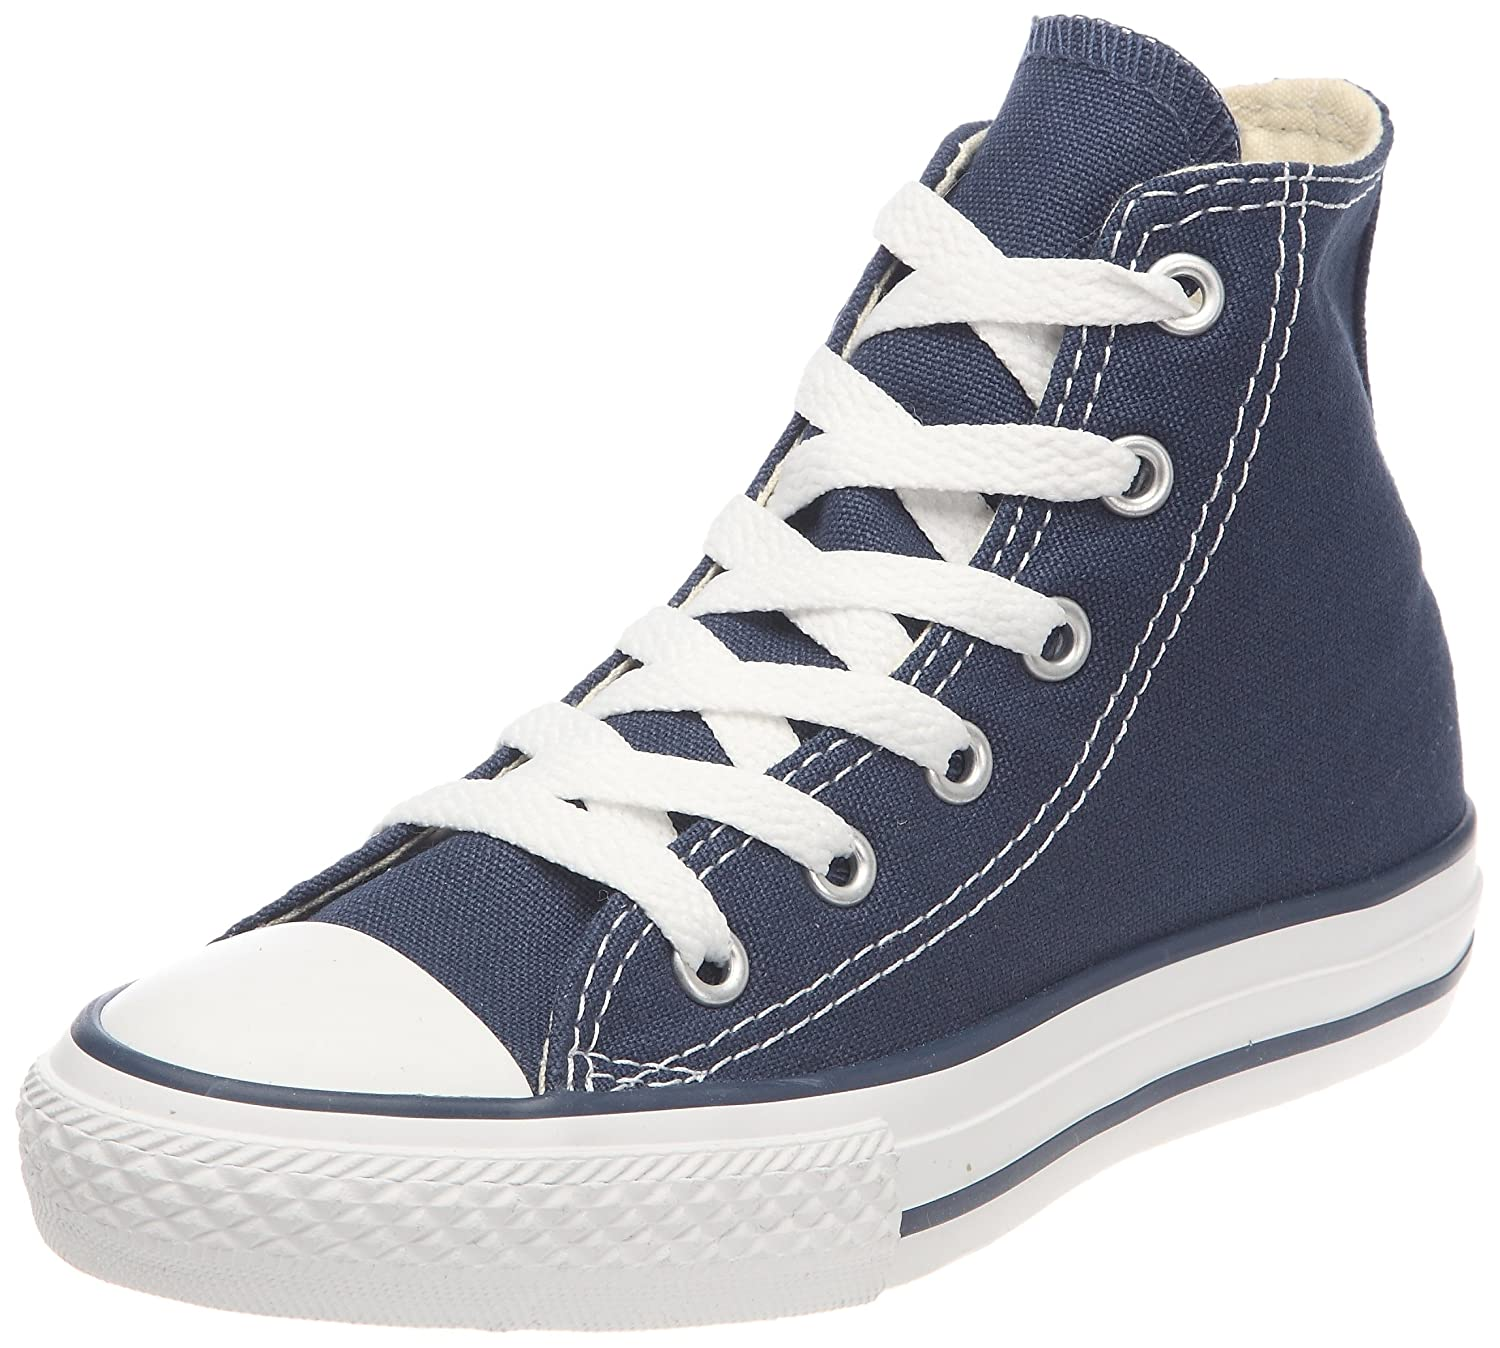 Converse - Youths Chuck Taylor All Star Hi - Sneakers Basses -...